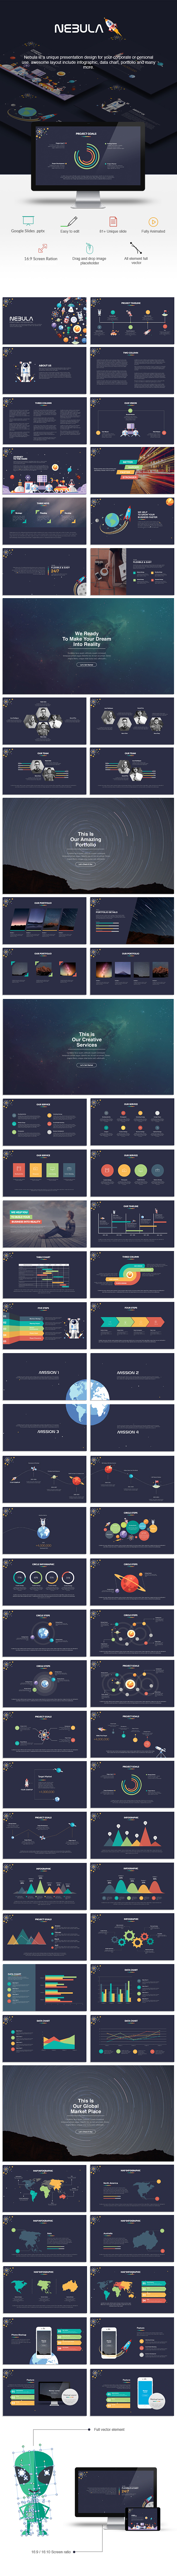 Nebula Google Slides Presentation - Google Slides Presentation Templates